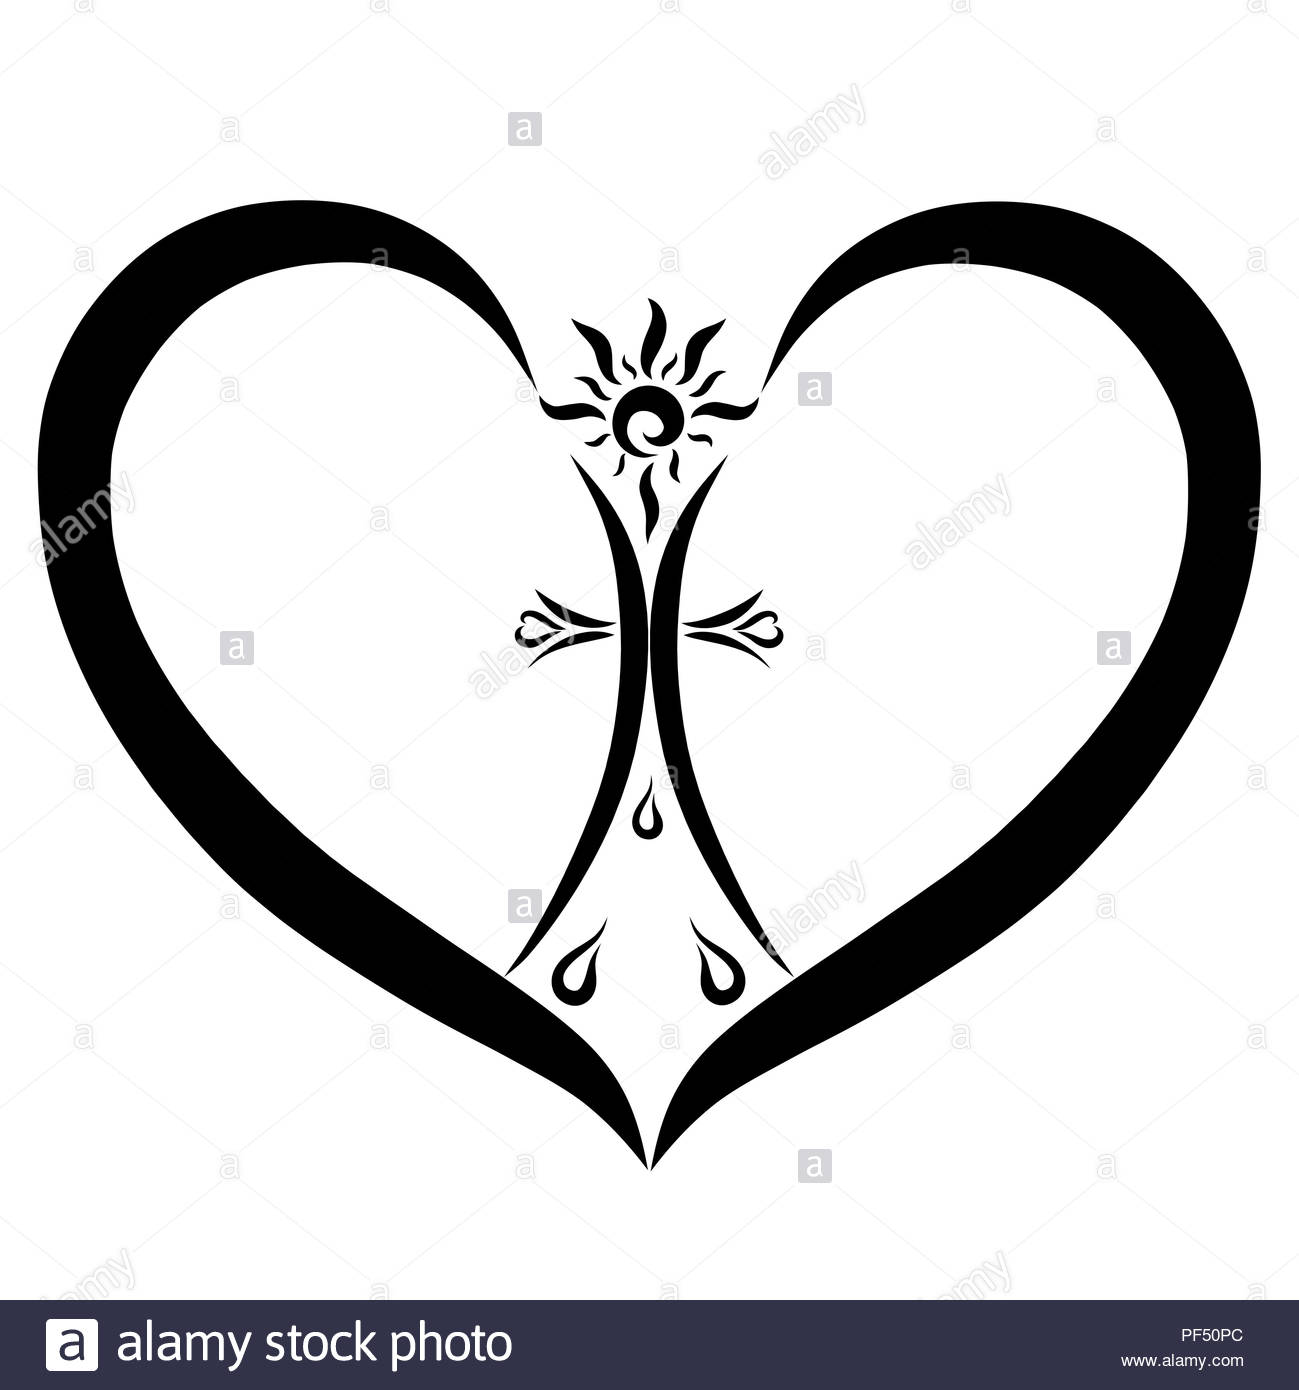 christian symbols heart with a cross sun and drops stock photo